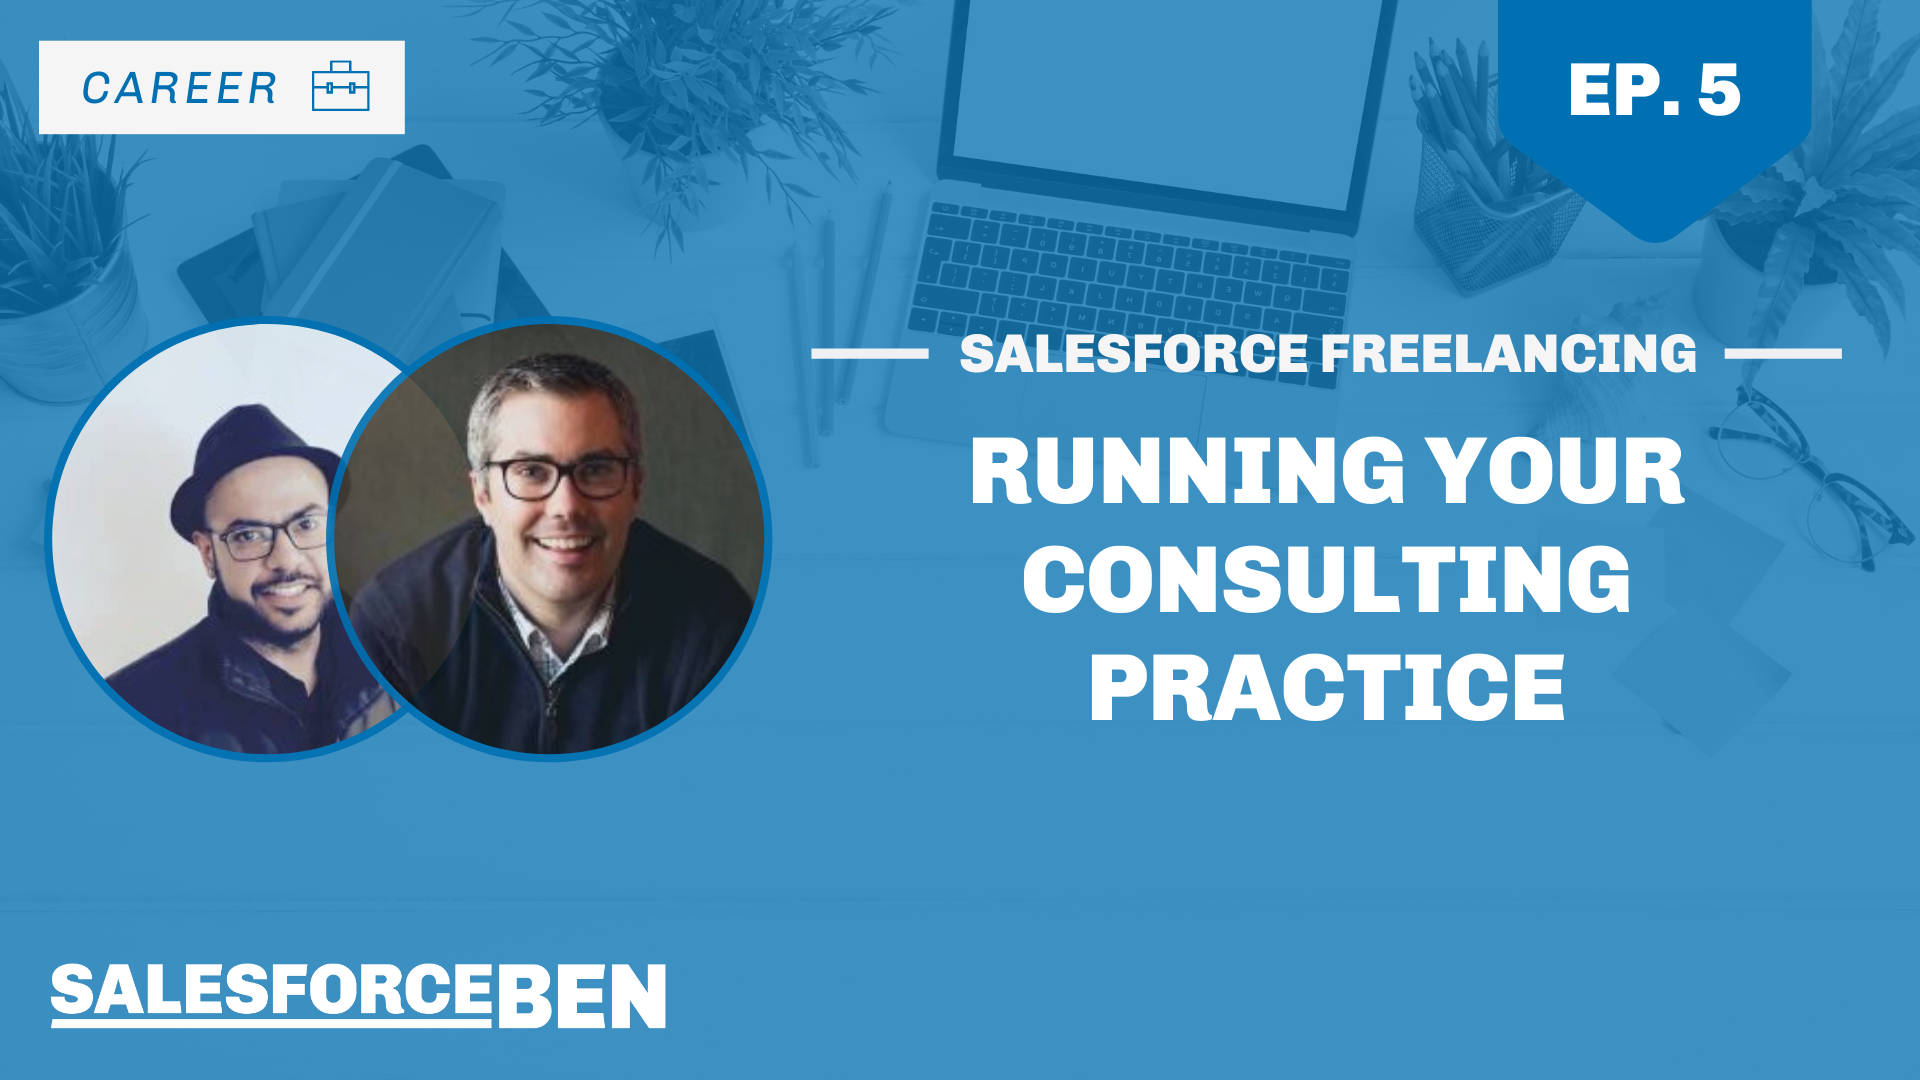 Salesforce Freelancing: Running Your Consulting Practice (Ep. 5)